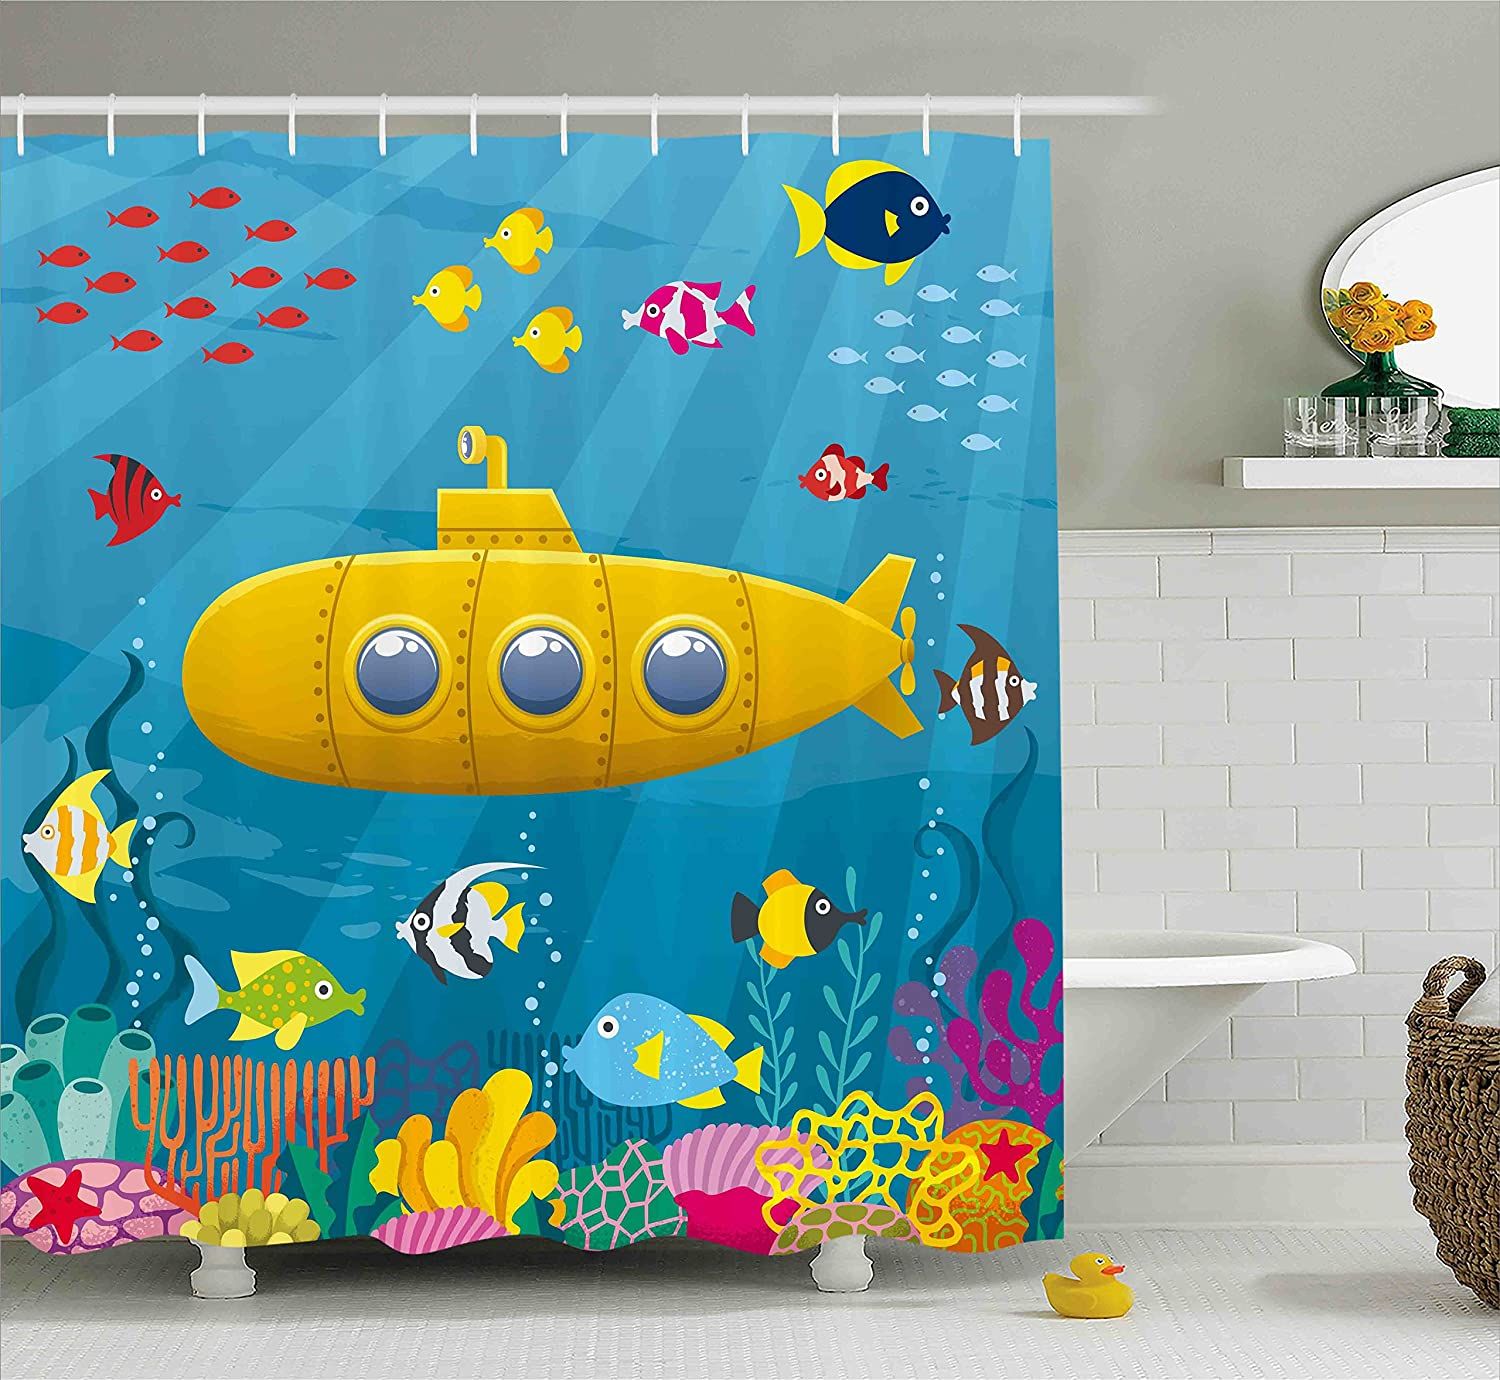 Ambesonne Yellow Submarine Shower Curtain Set, Coral Reef with Colorful Fish Ocean Life Marine Creatures Tropical Kids, Fabric Bathroom Decor with Hooks, 70 Inches, Blue Yellow Pink